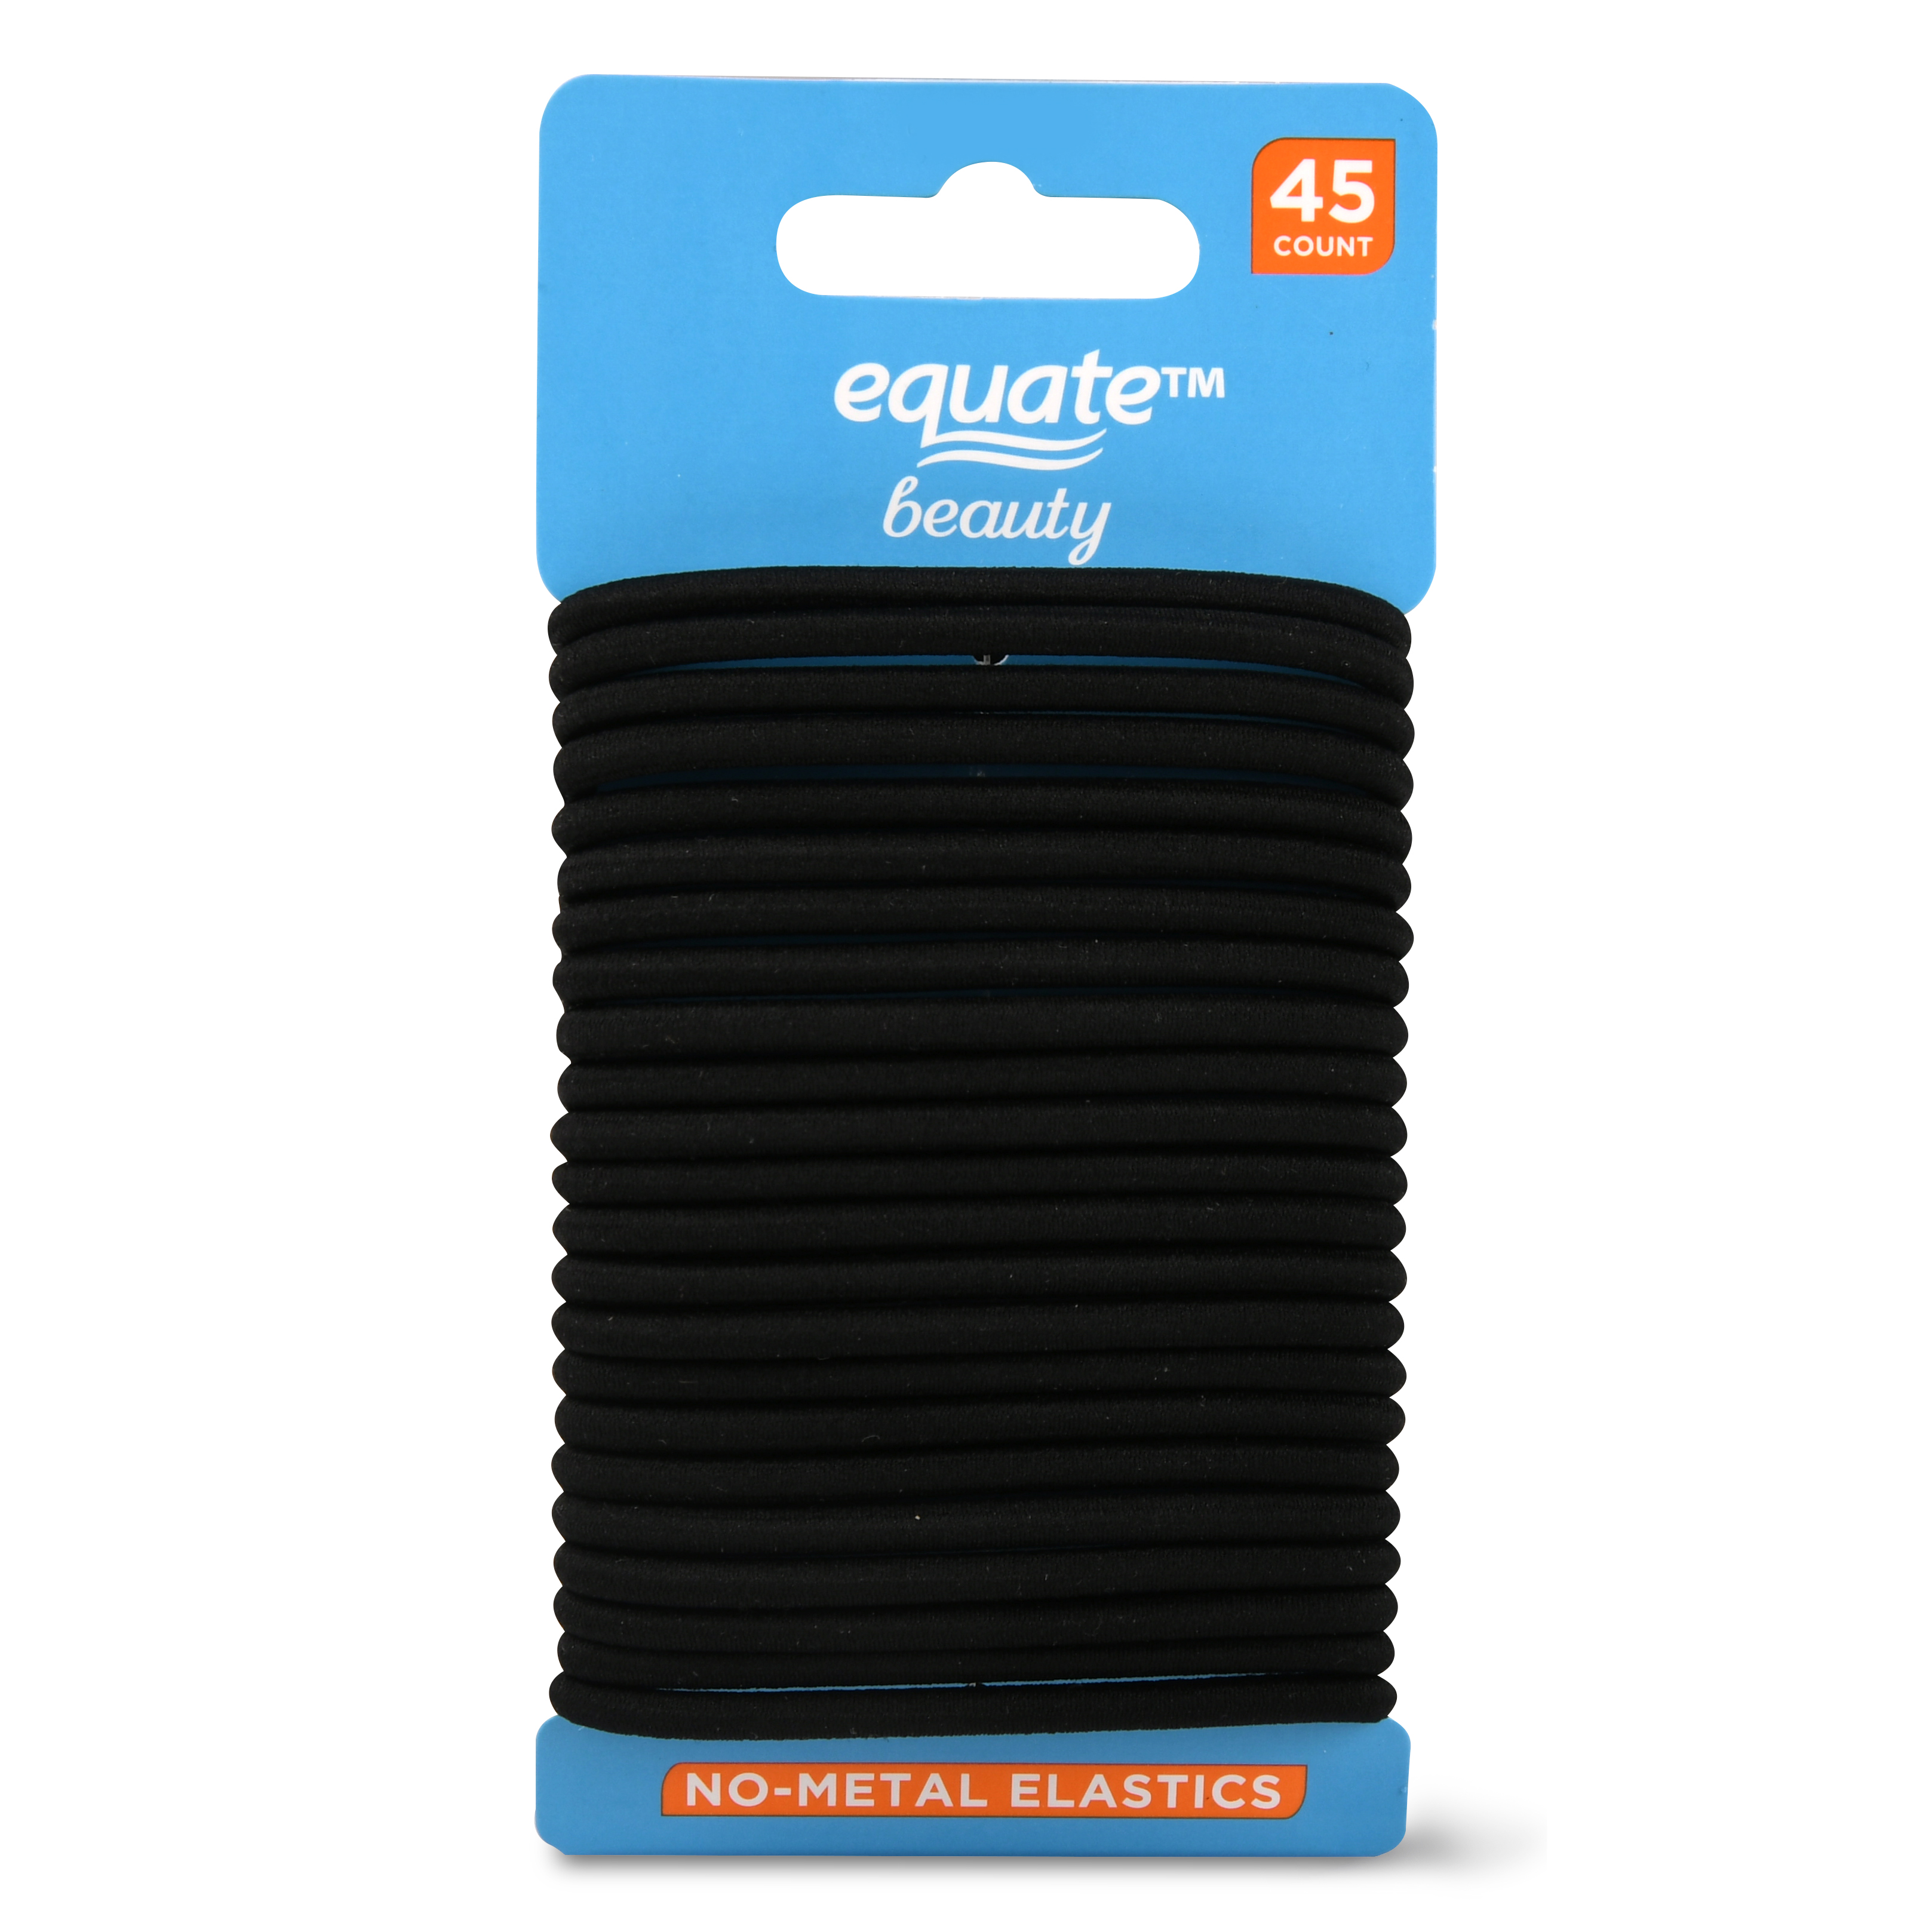 Equate Beauty No-Metal Elastics, 45 Count